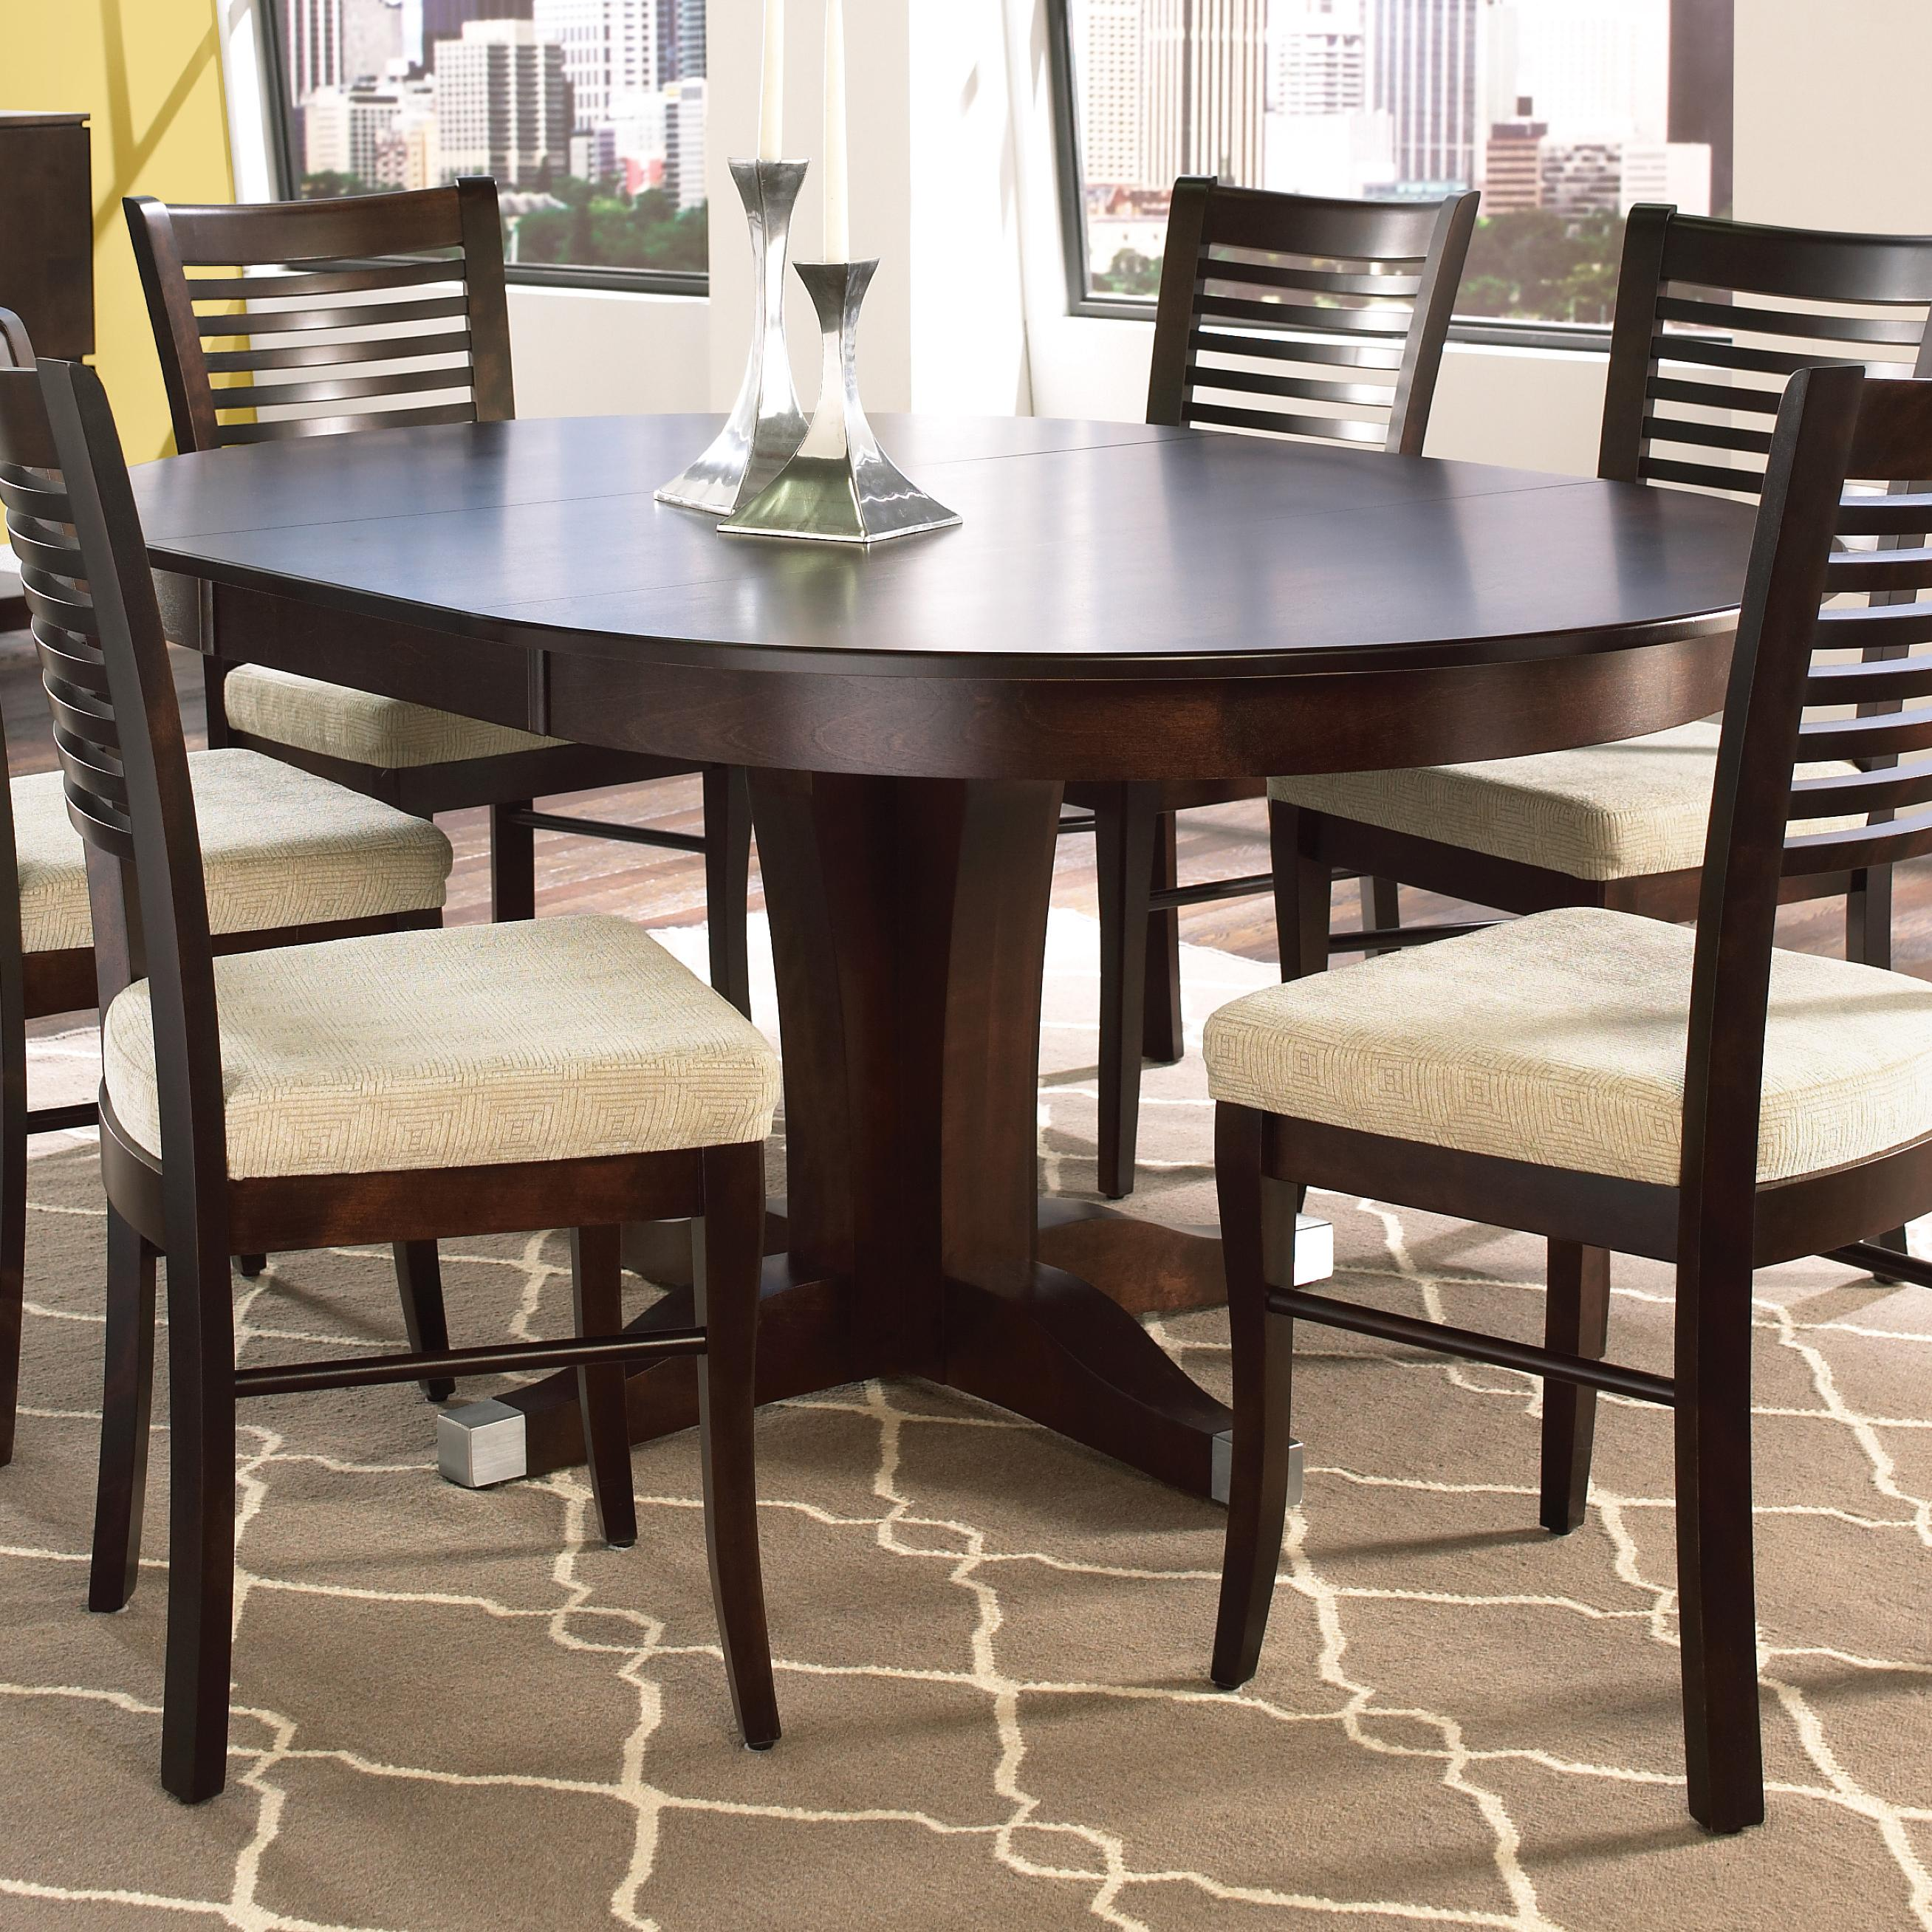 canadel custom dining trn048481818mxad1 customizable round table with pedestal and leaf becker. Black Bedroom Furniture Sets. Home Design Ideas